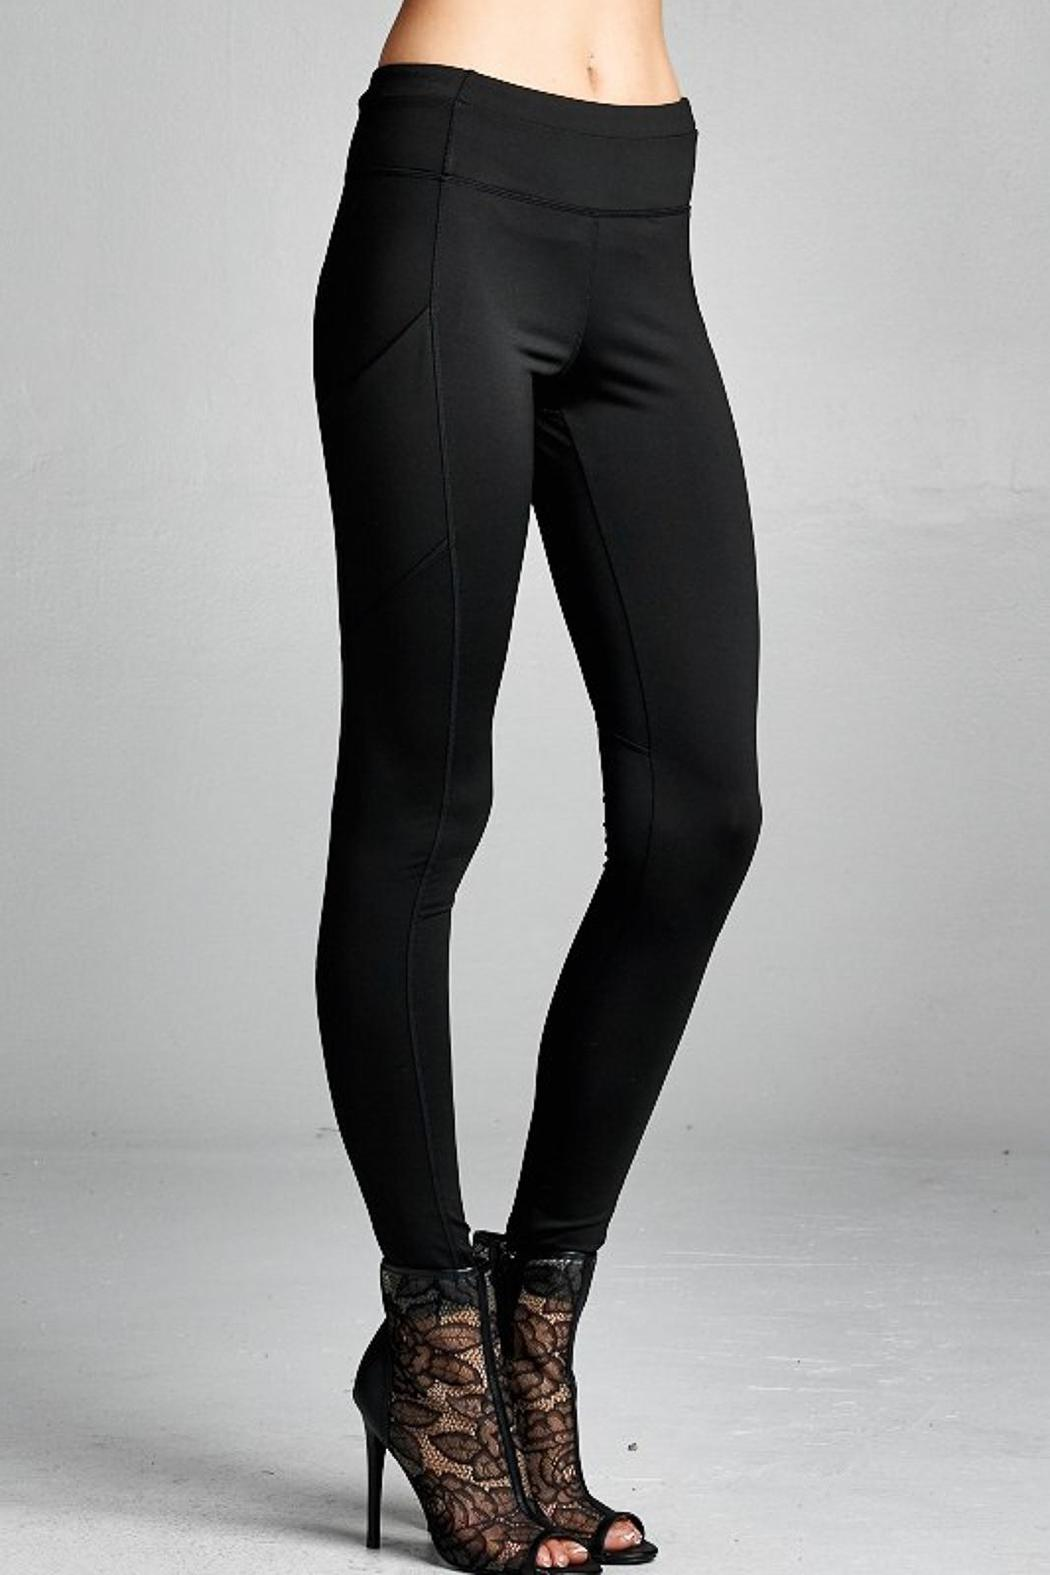 People Outfitter Street Yoga Pants - Main Image